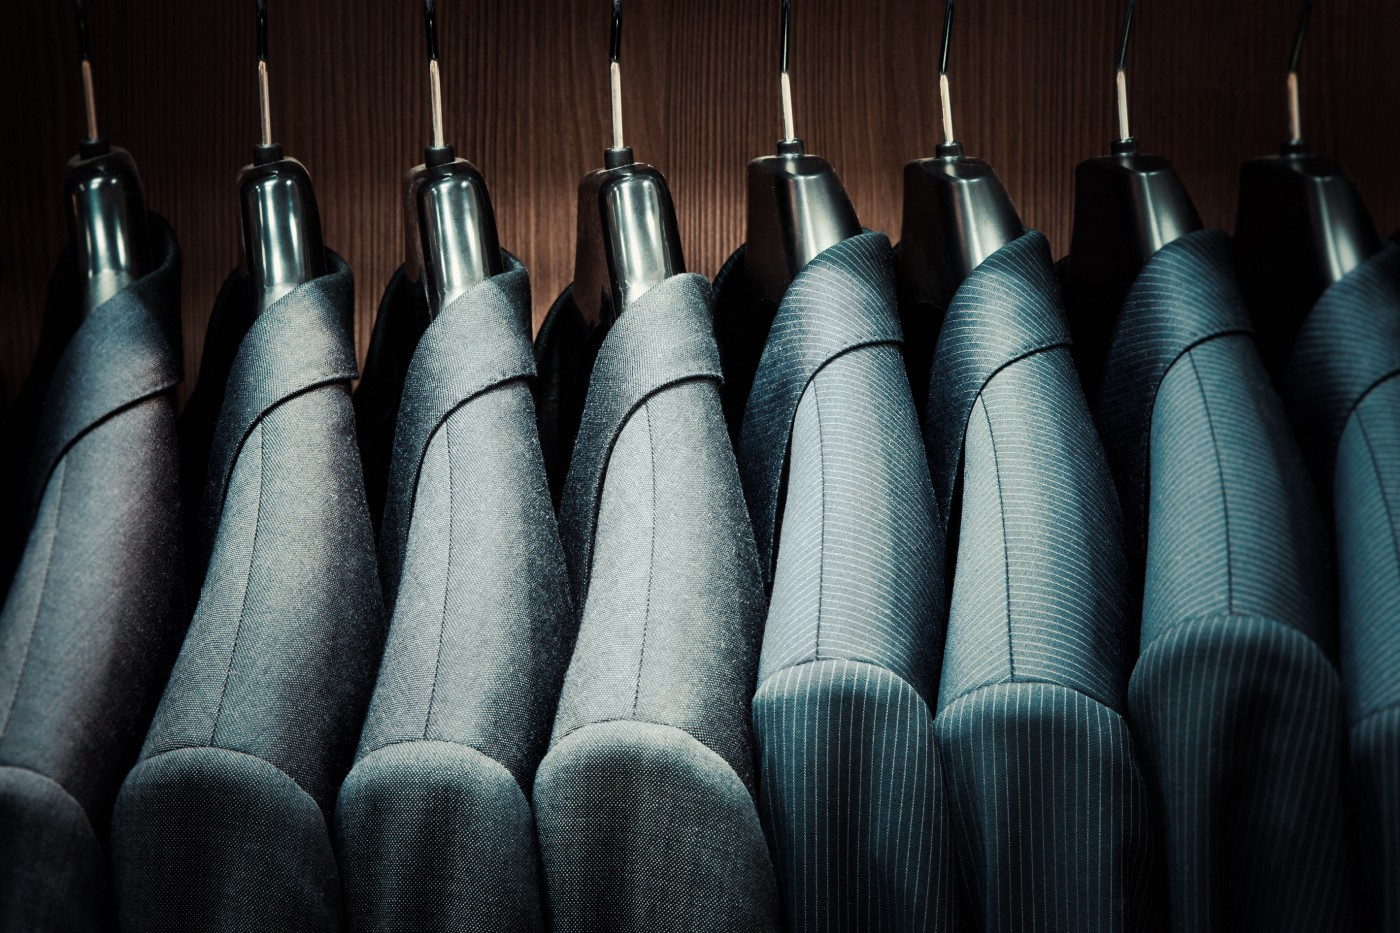 Dark wall with a rack of suit blazers in various shades of gray